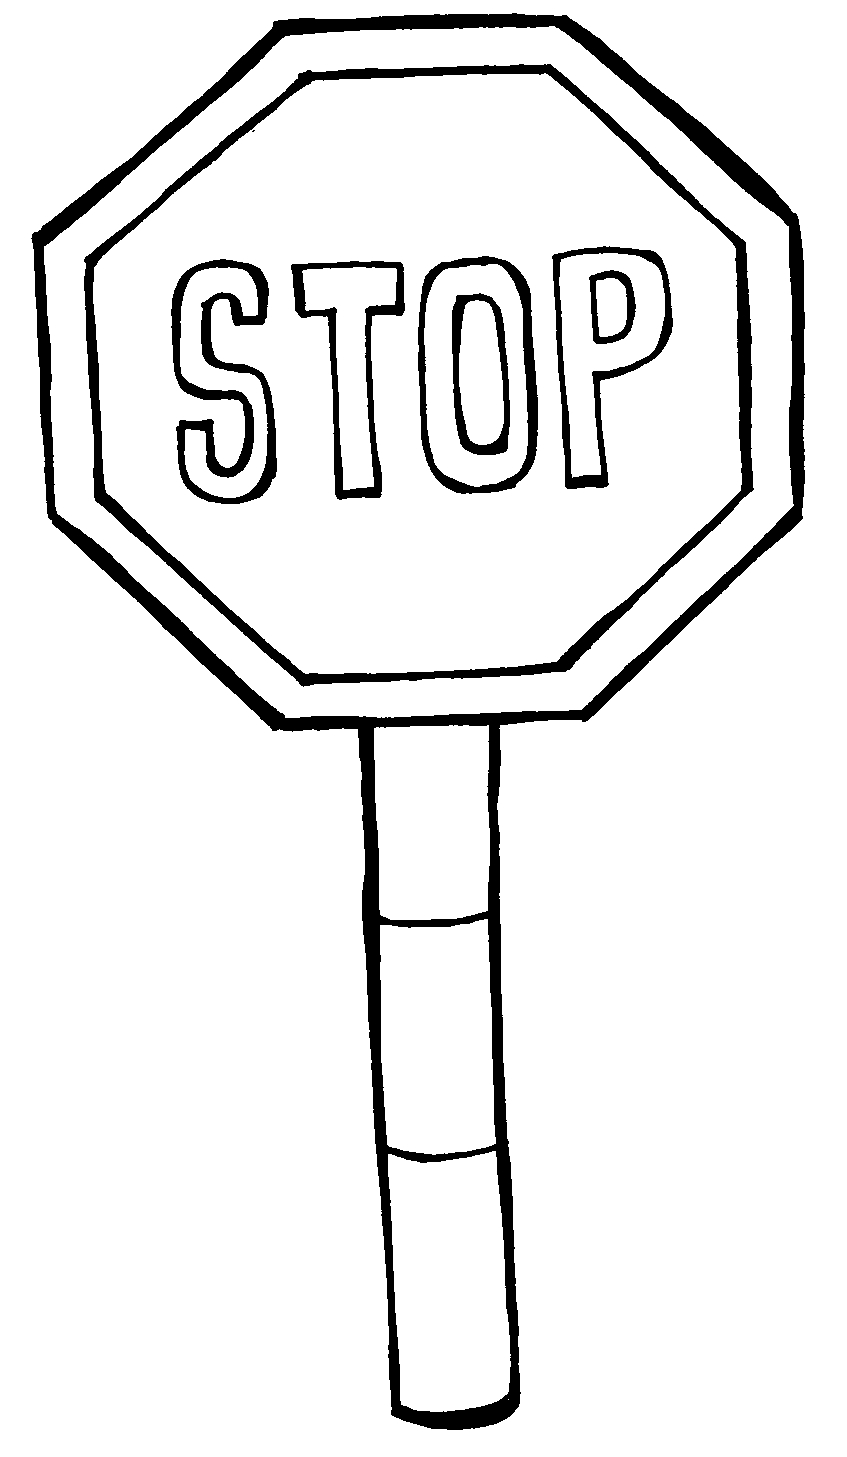 Safety Signs Coloring Pages Free Masivy World In Exquisite School Download Of Road Sign Drawing at Getdrawings Collection